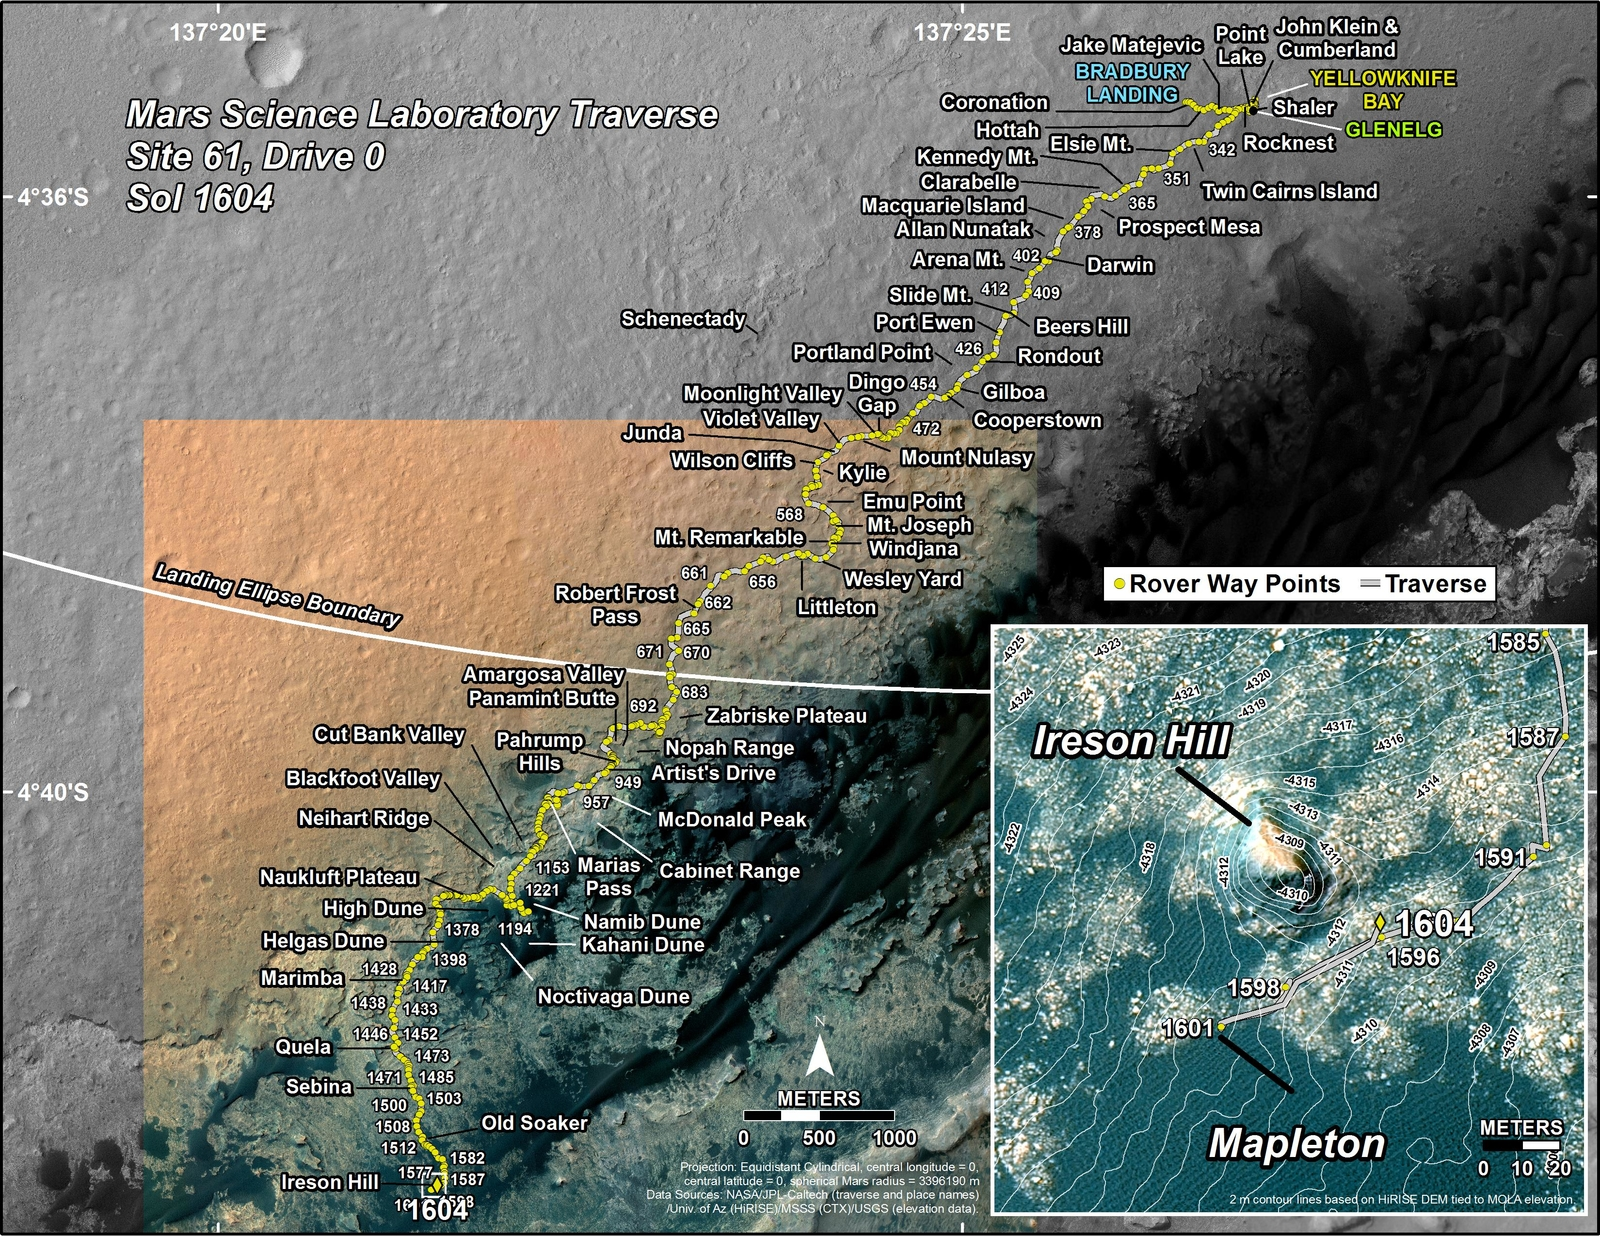 This map shows the route driven by NASA's Mars rover Curiosity through the 1604 Martian day, or sol, of the rover's mission on Mars (February 09, 2017).